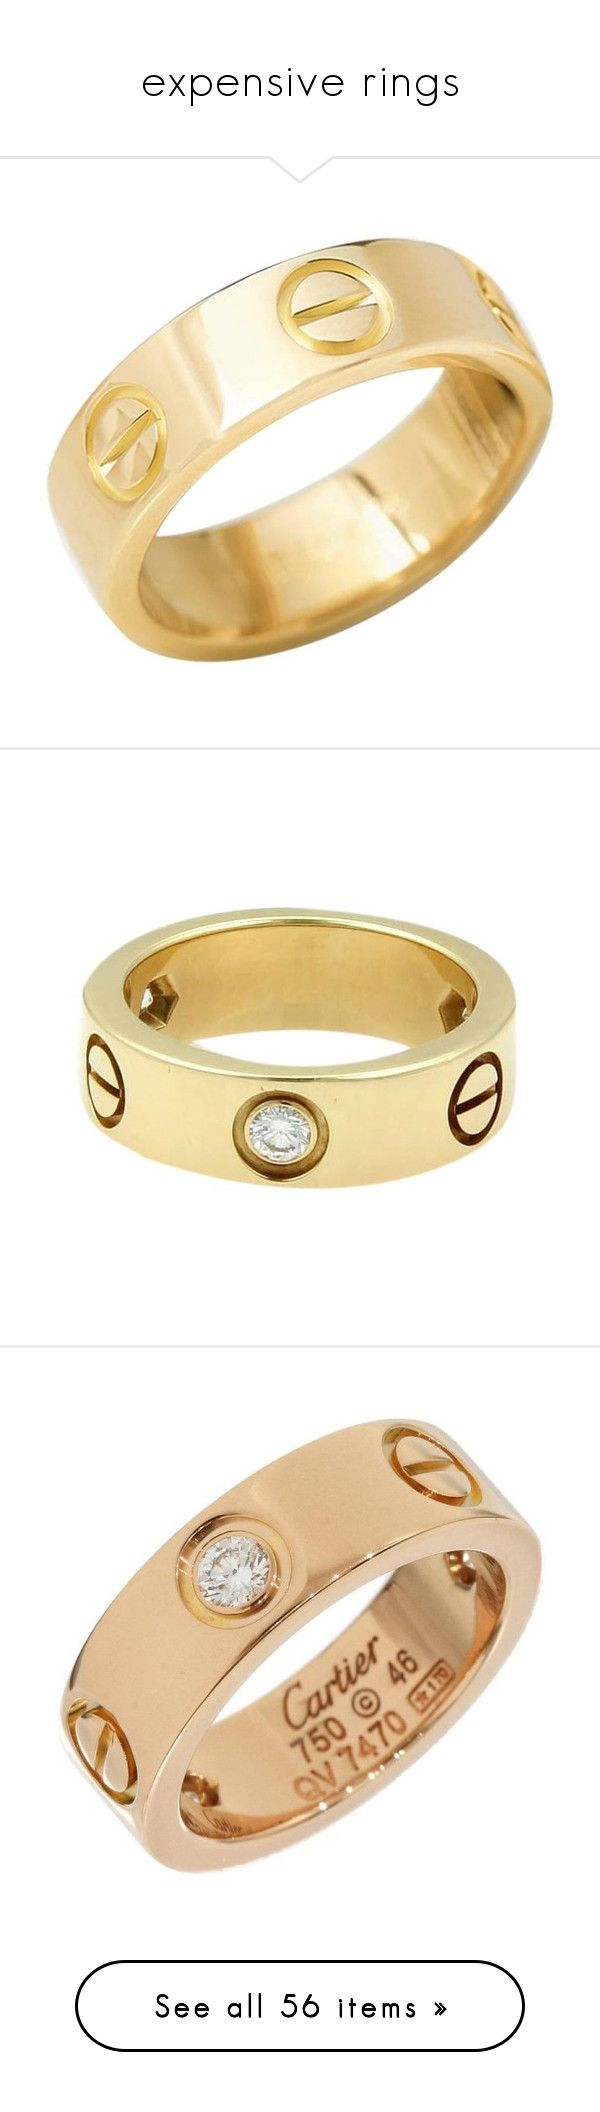 """""""expensive rings"""" by mrstomlinson974 on Polyvore featuring jewelry, rings, band rings, yellow, gold jewelry, gold rings, engraved jewelry, gold engraved ring, 18k gold jewelry and gold jewellery"""